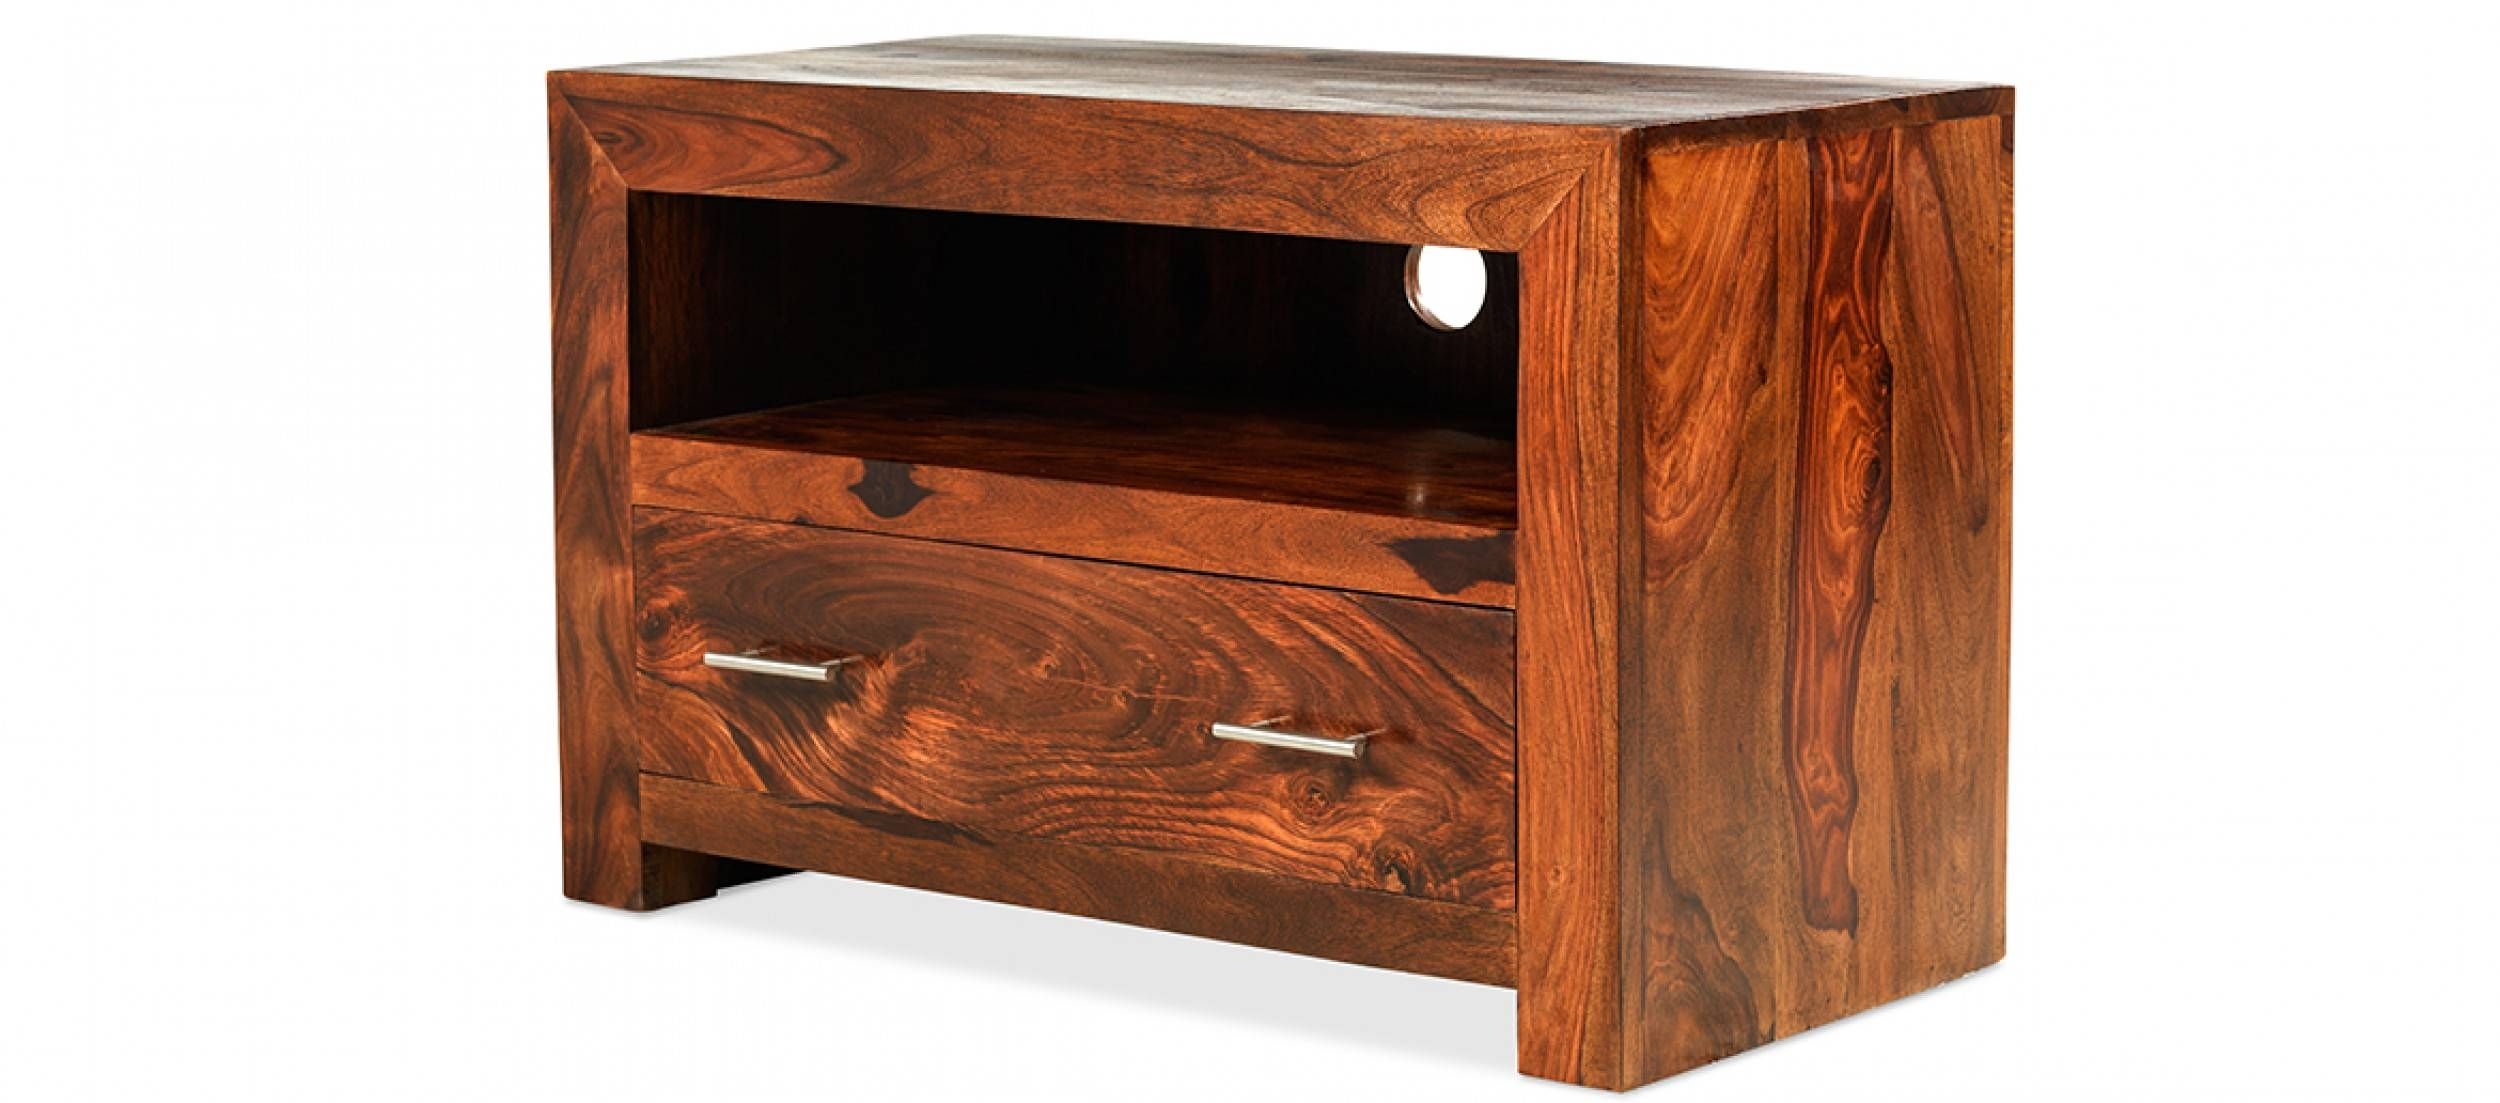 Cube Sheesham Square Tv Stand | Quercus Living Regarding Square Tv Stands (View 8 of 15)